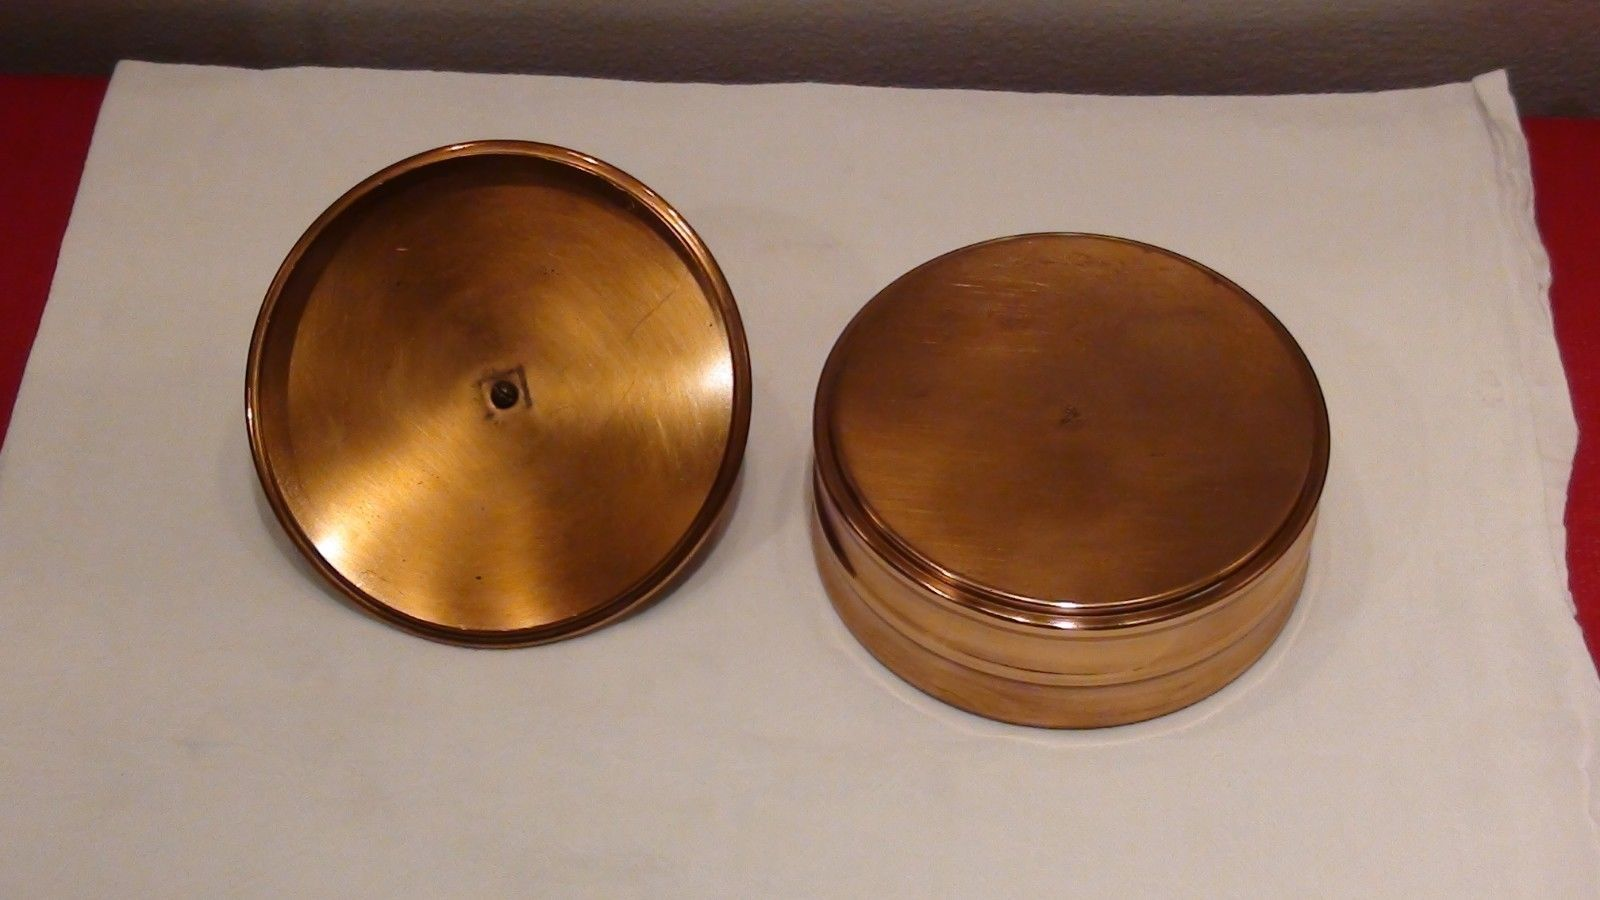 Chase Brass and Copper One Tray Box | eBay